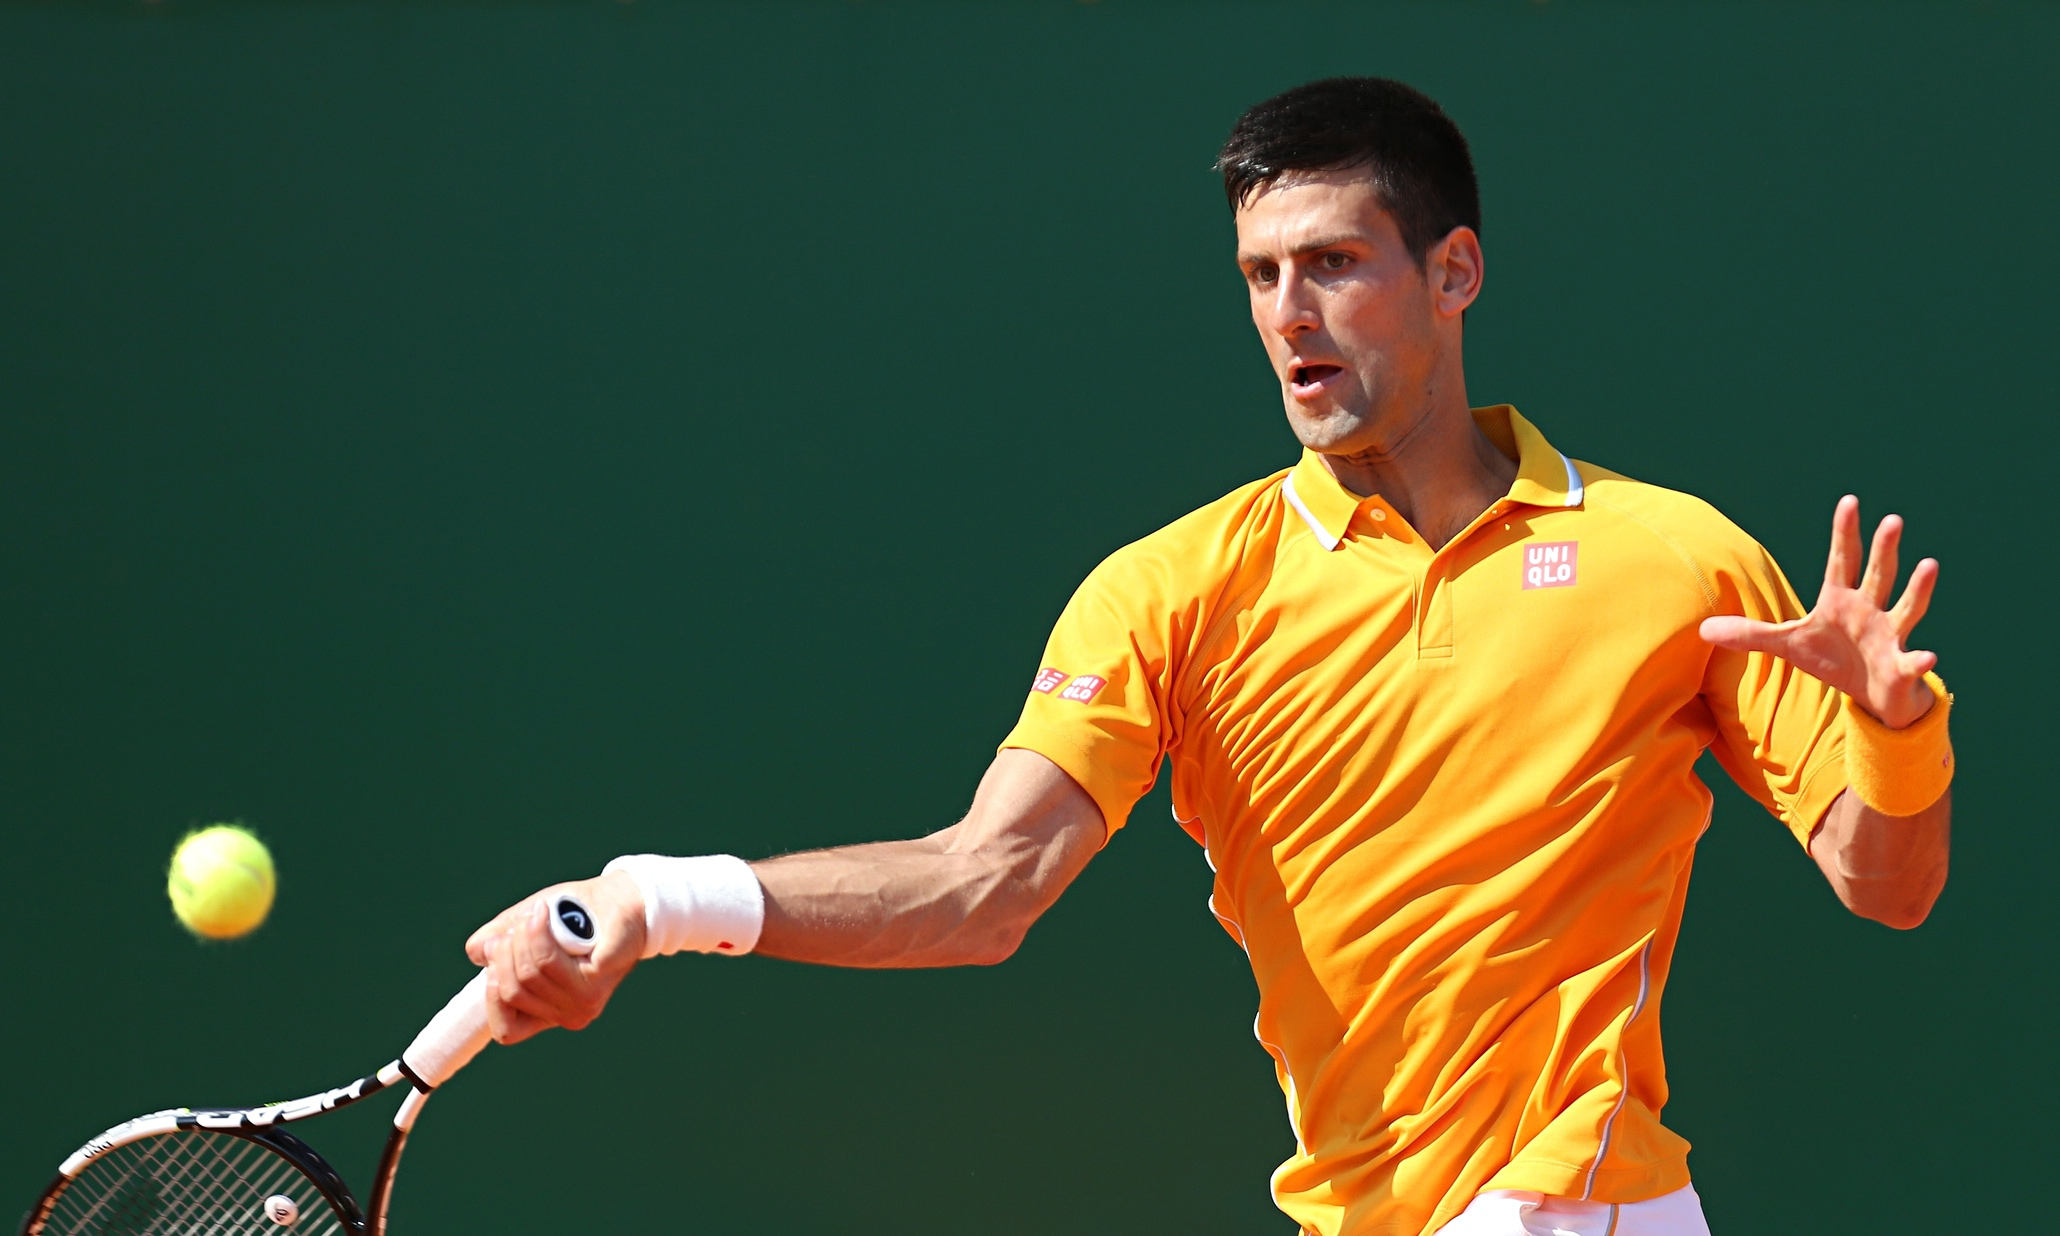 djokovic - photo #23